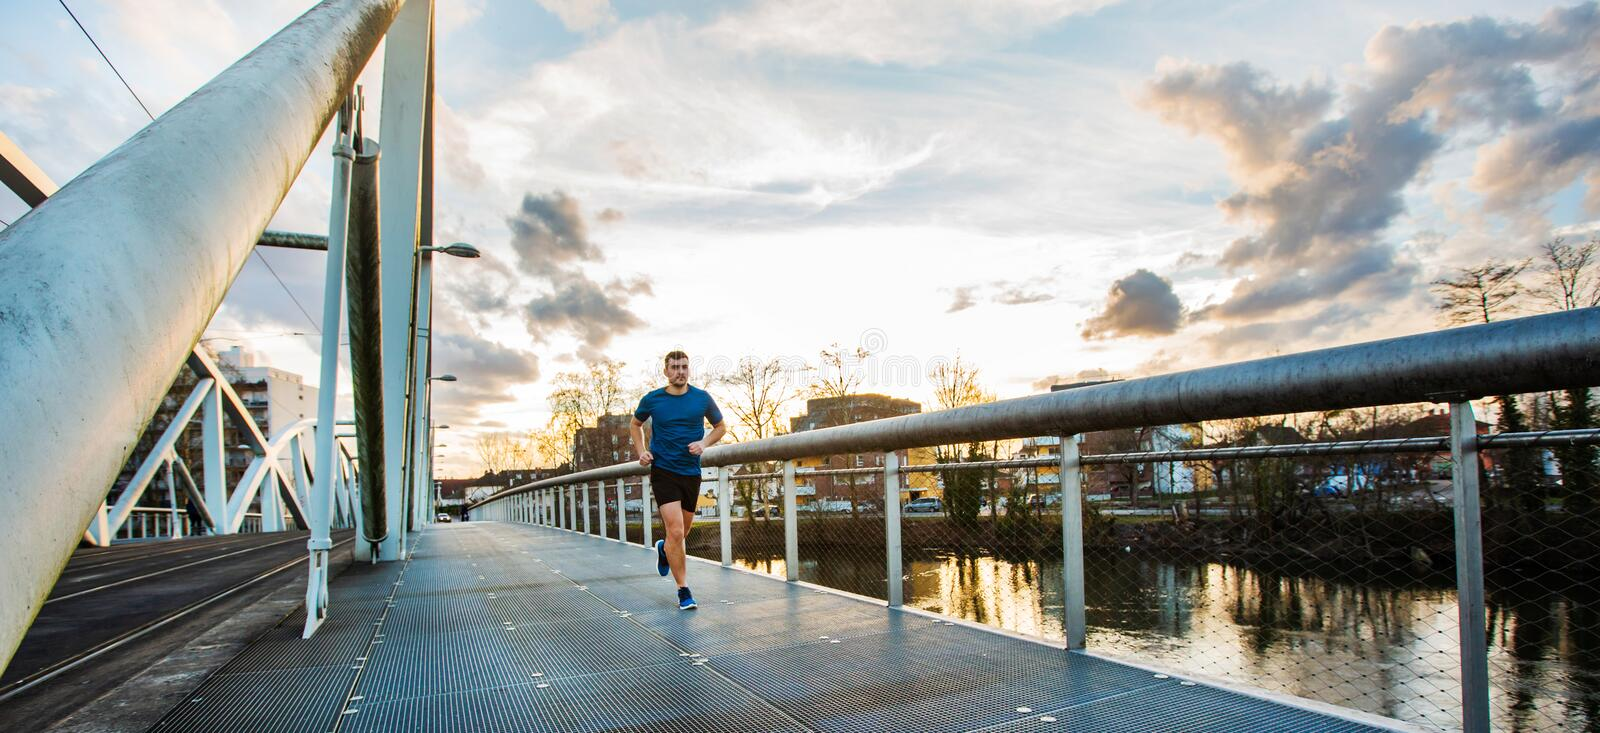 Running man runner training doing outdoor. City run sprinting over a bridge. Urban healthy active lifestyle. Male athlete running over sunset background royalty free stock photos